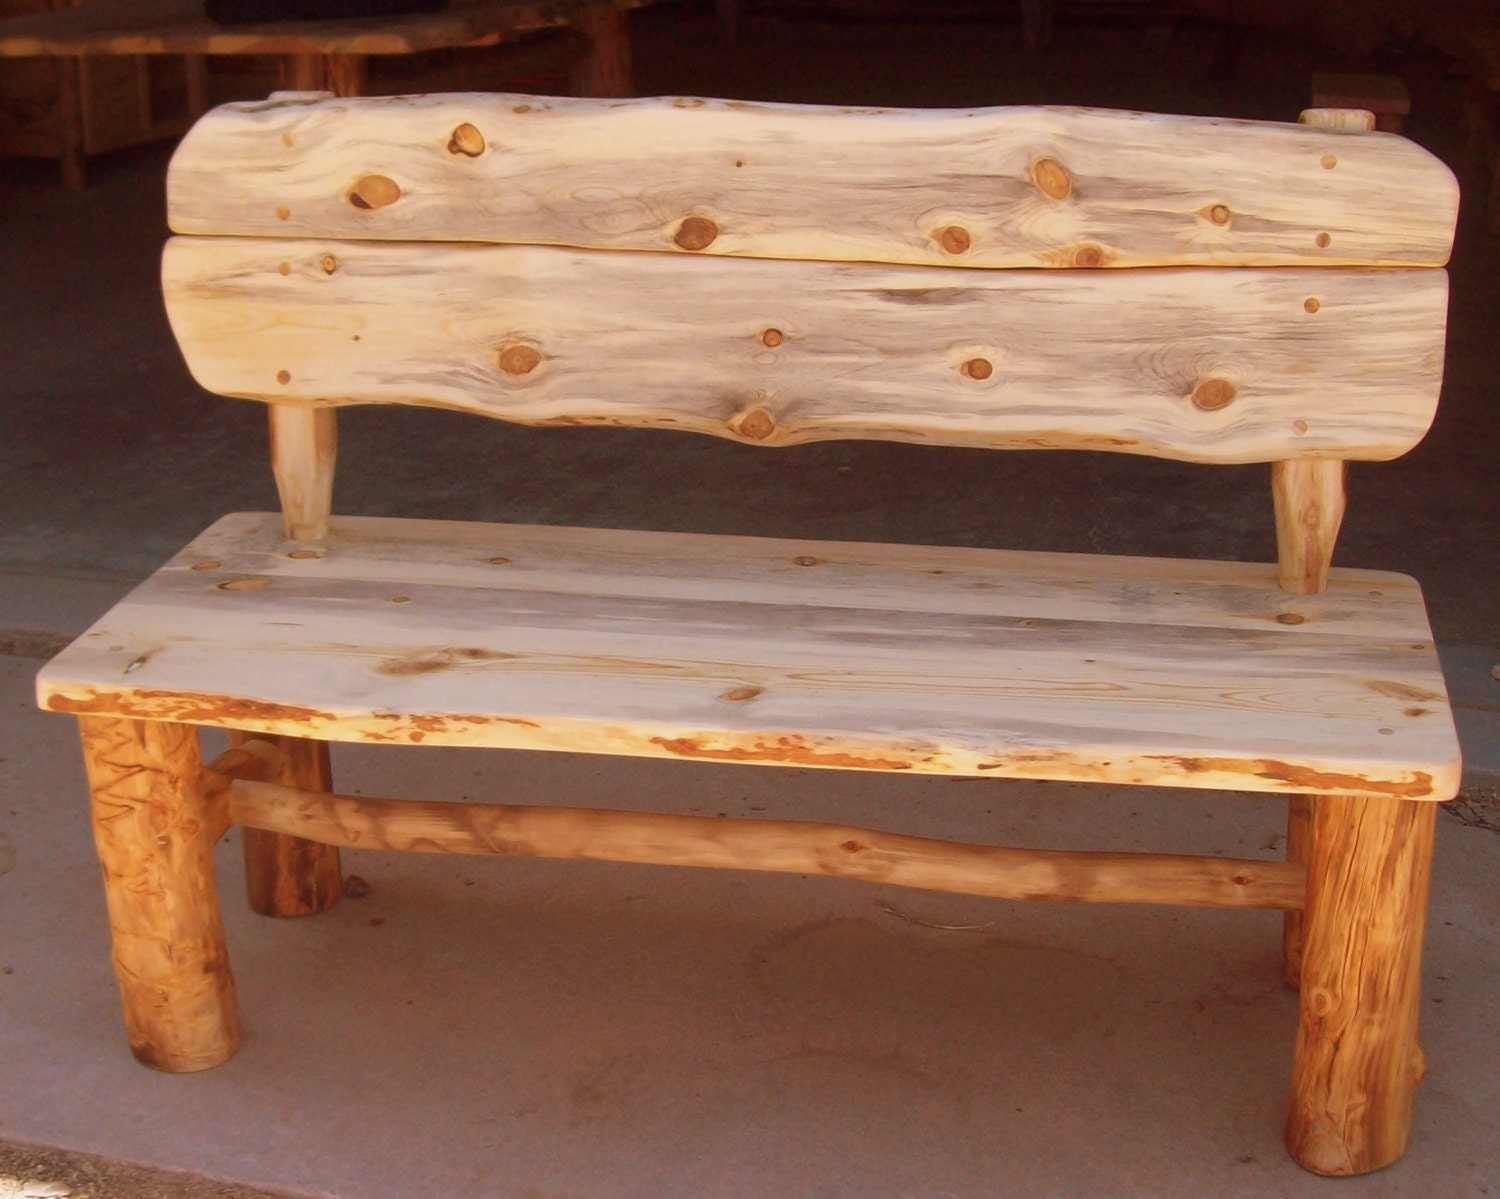 Wedding Guest Book Alternative Rustic Wood Bench by naturallyaspen